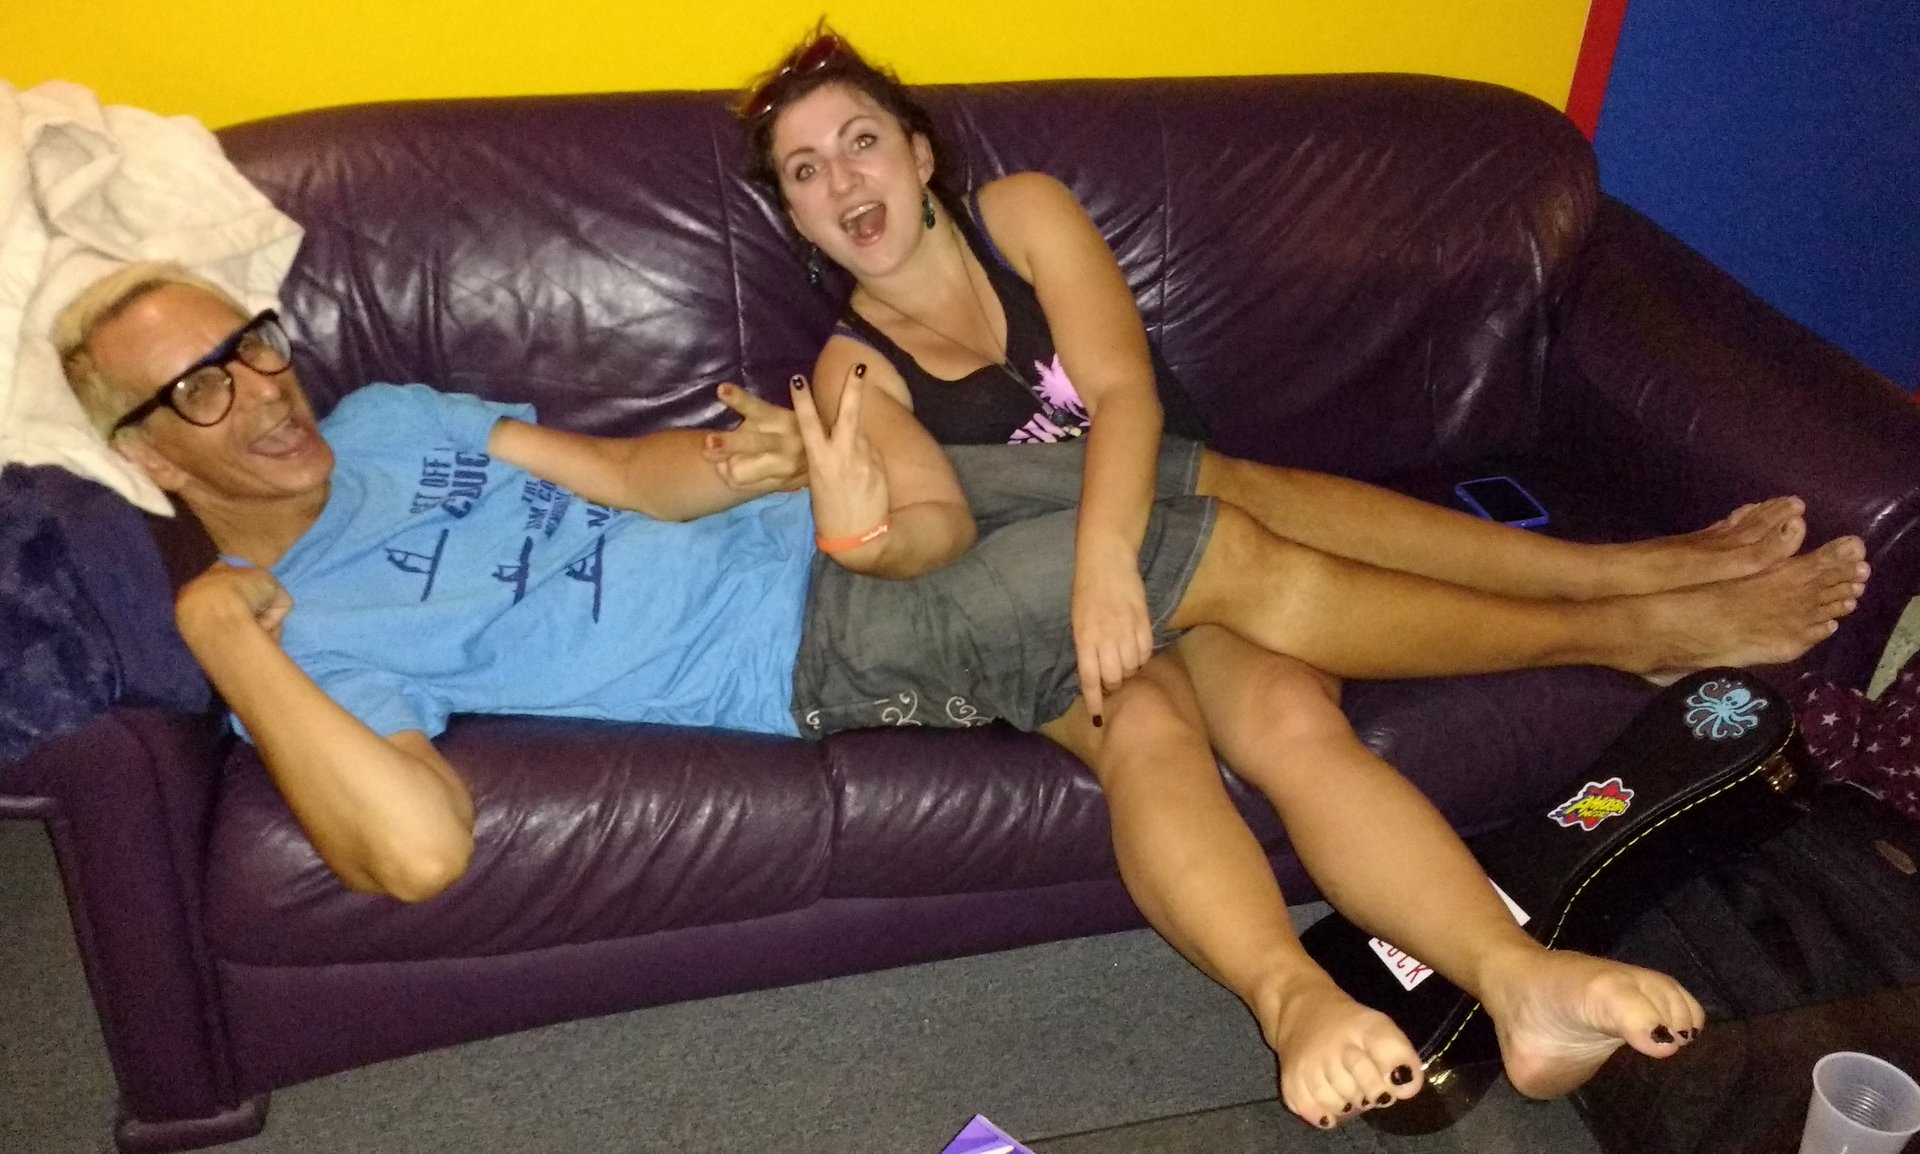 Glenn & Elena relaxing on the purple couch in the living room